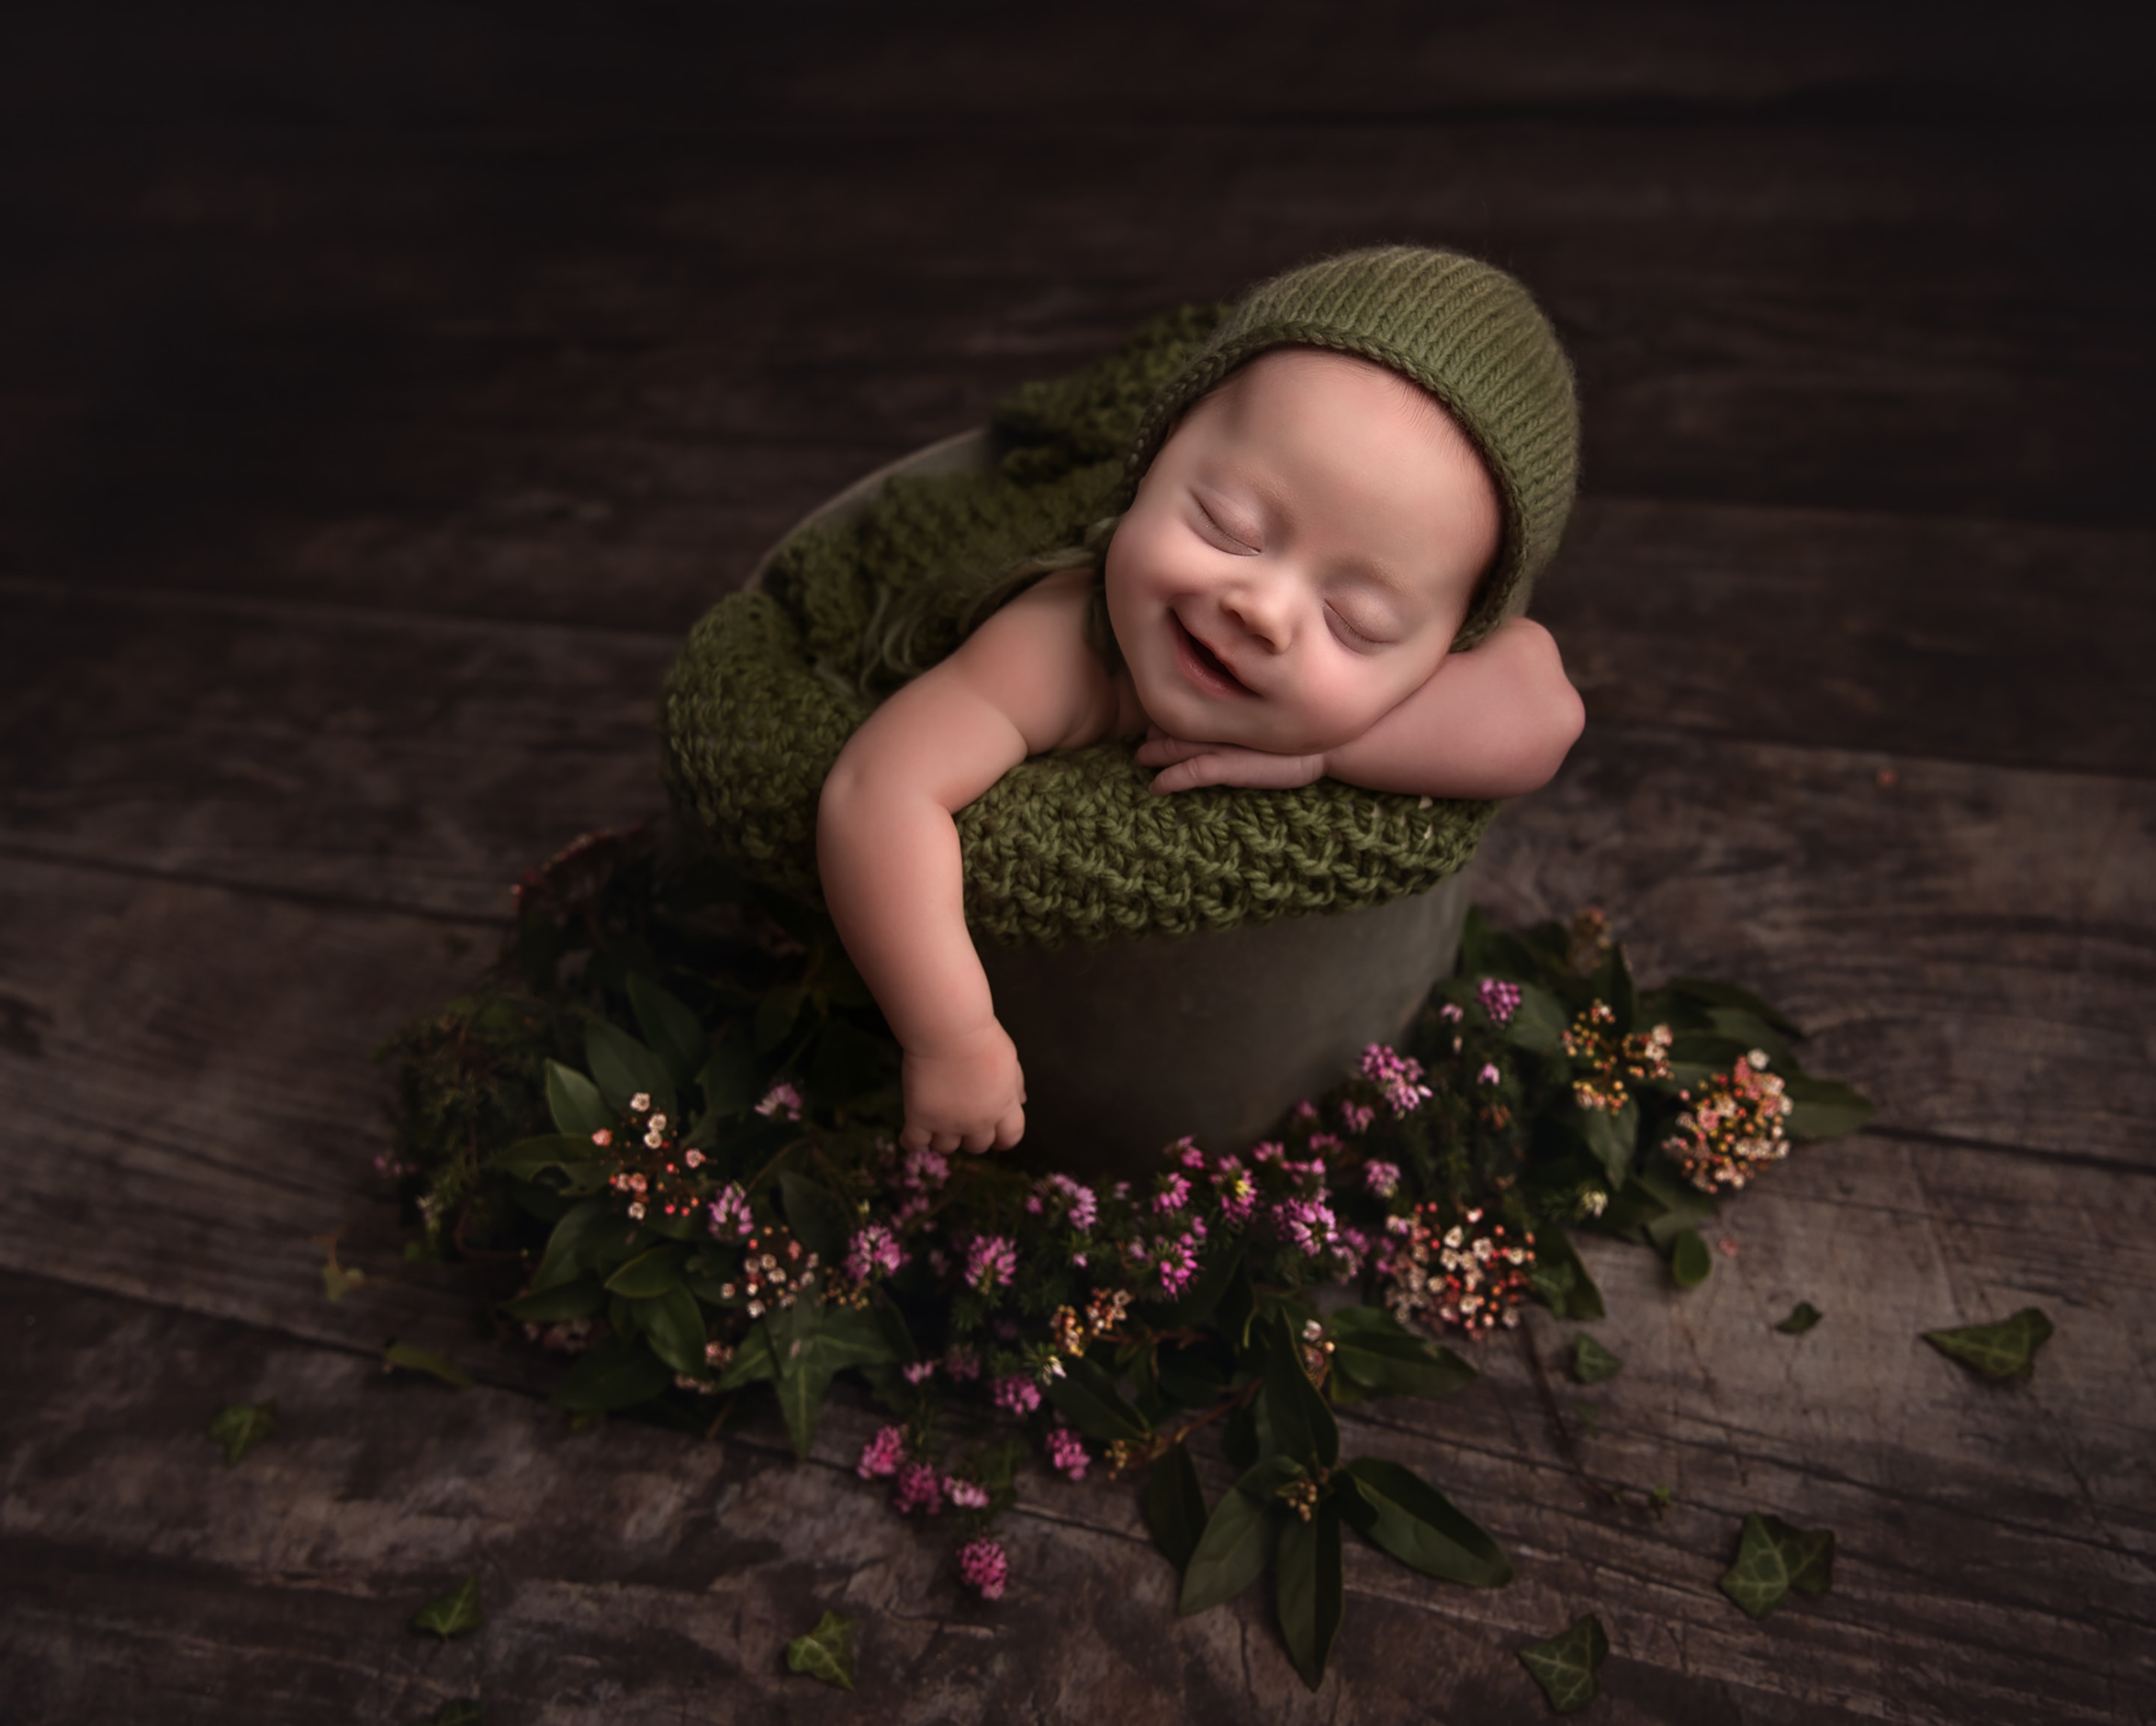 Newborn baby smiling whilst posed in a metal bucket with flowers